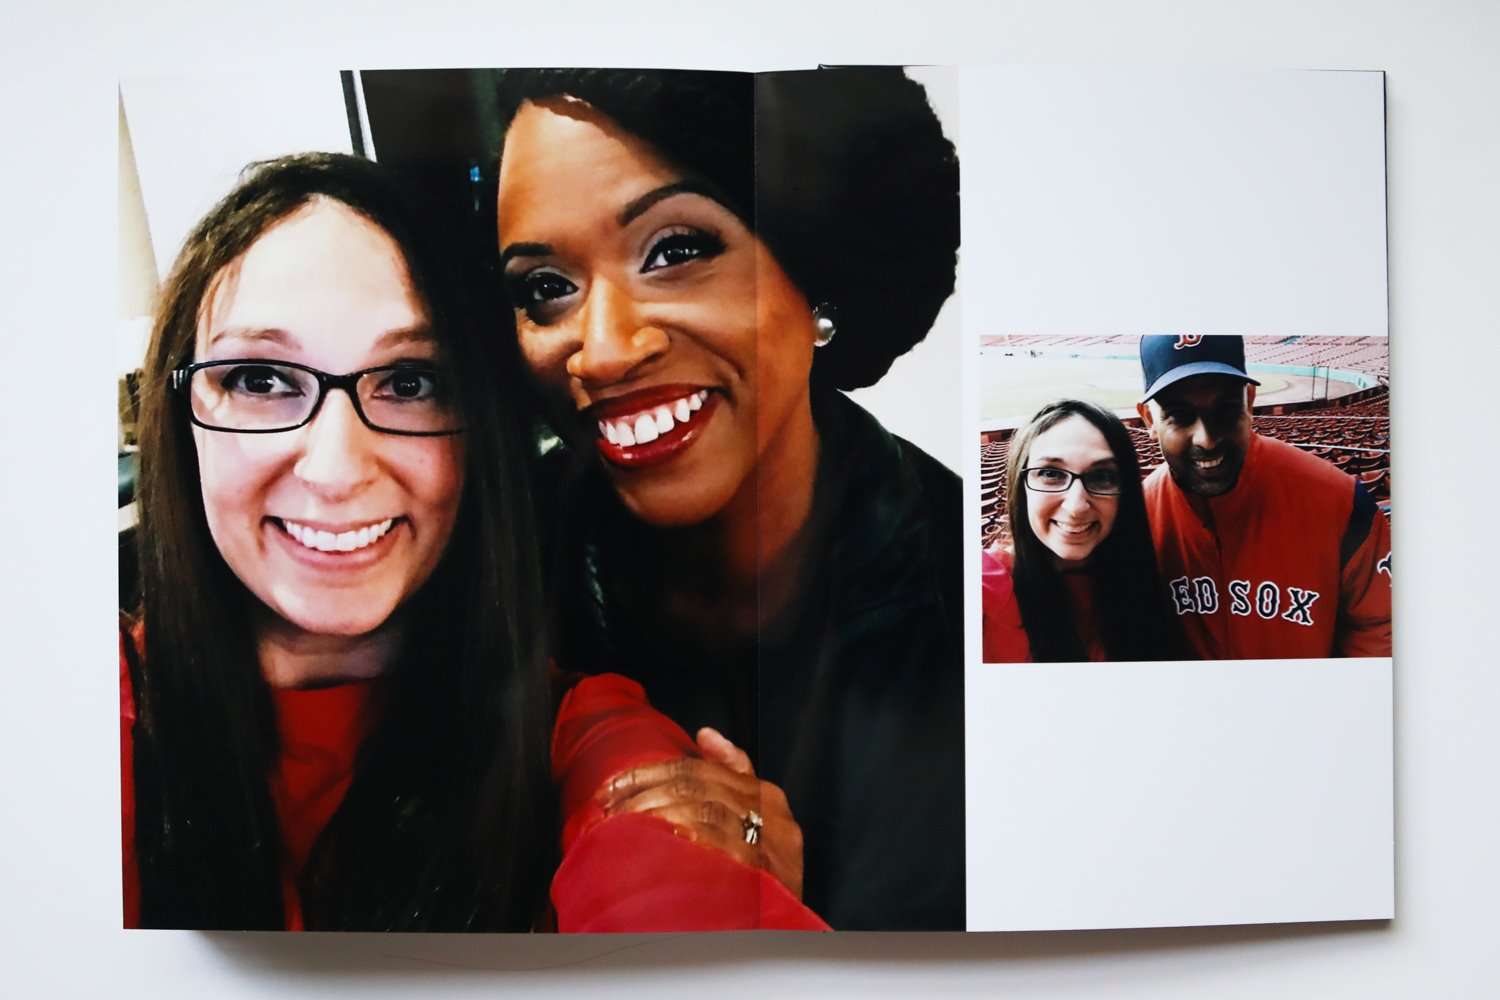 Behind the scenes: Diana Levine and Ayanna Pressley and Alex Cora at Fenway Park